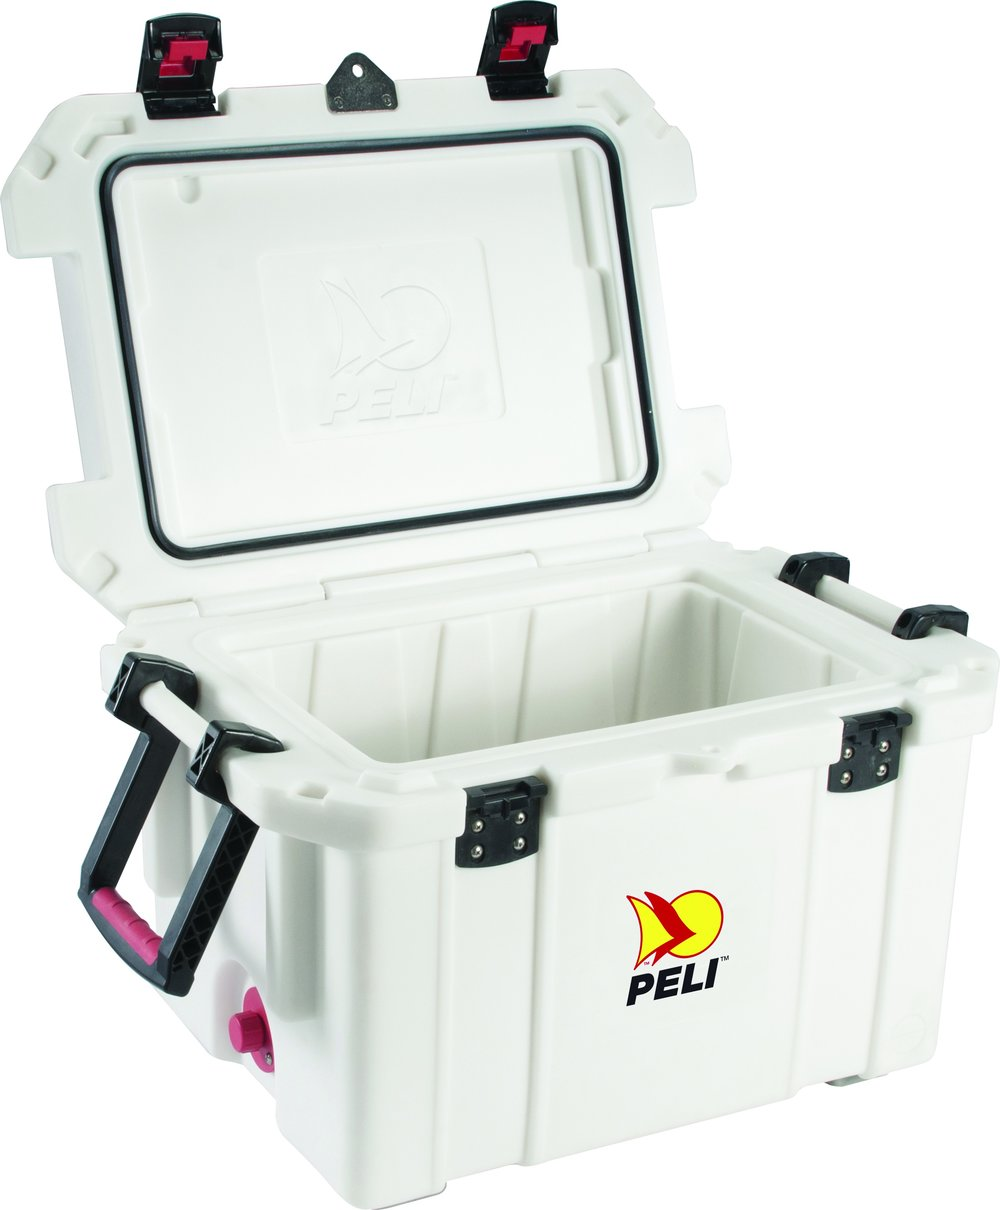 Peli_Products_Uk_Cooler_Case_1.jpg